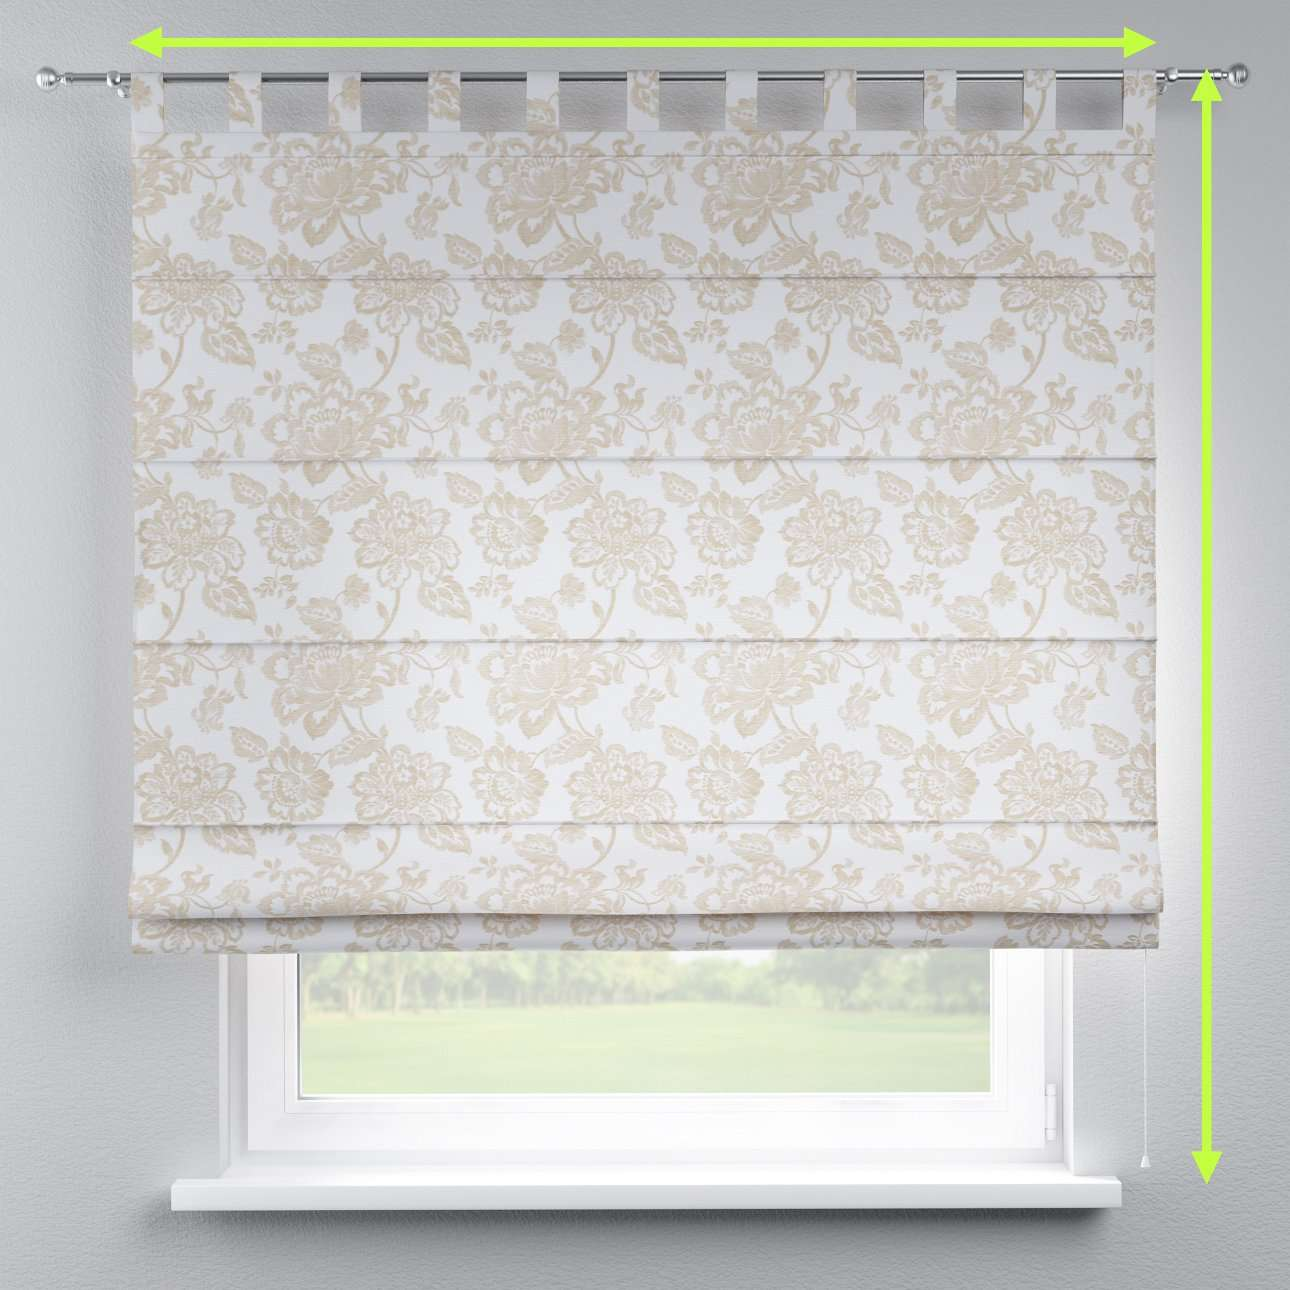 Verona tab top roman blind in collection Rustica, fabric: 138-23